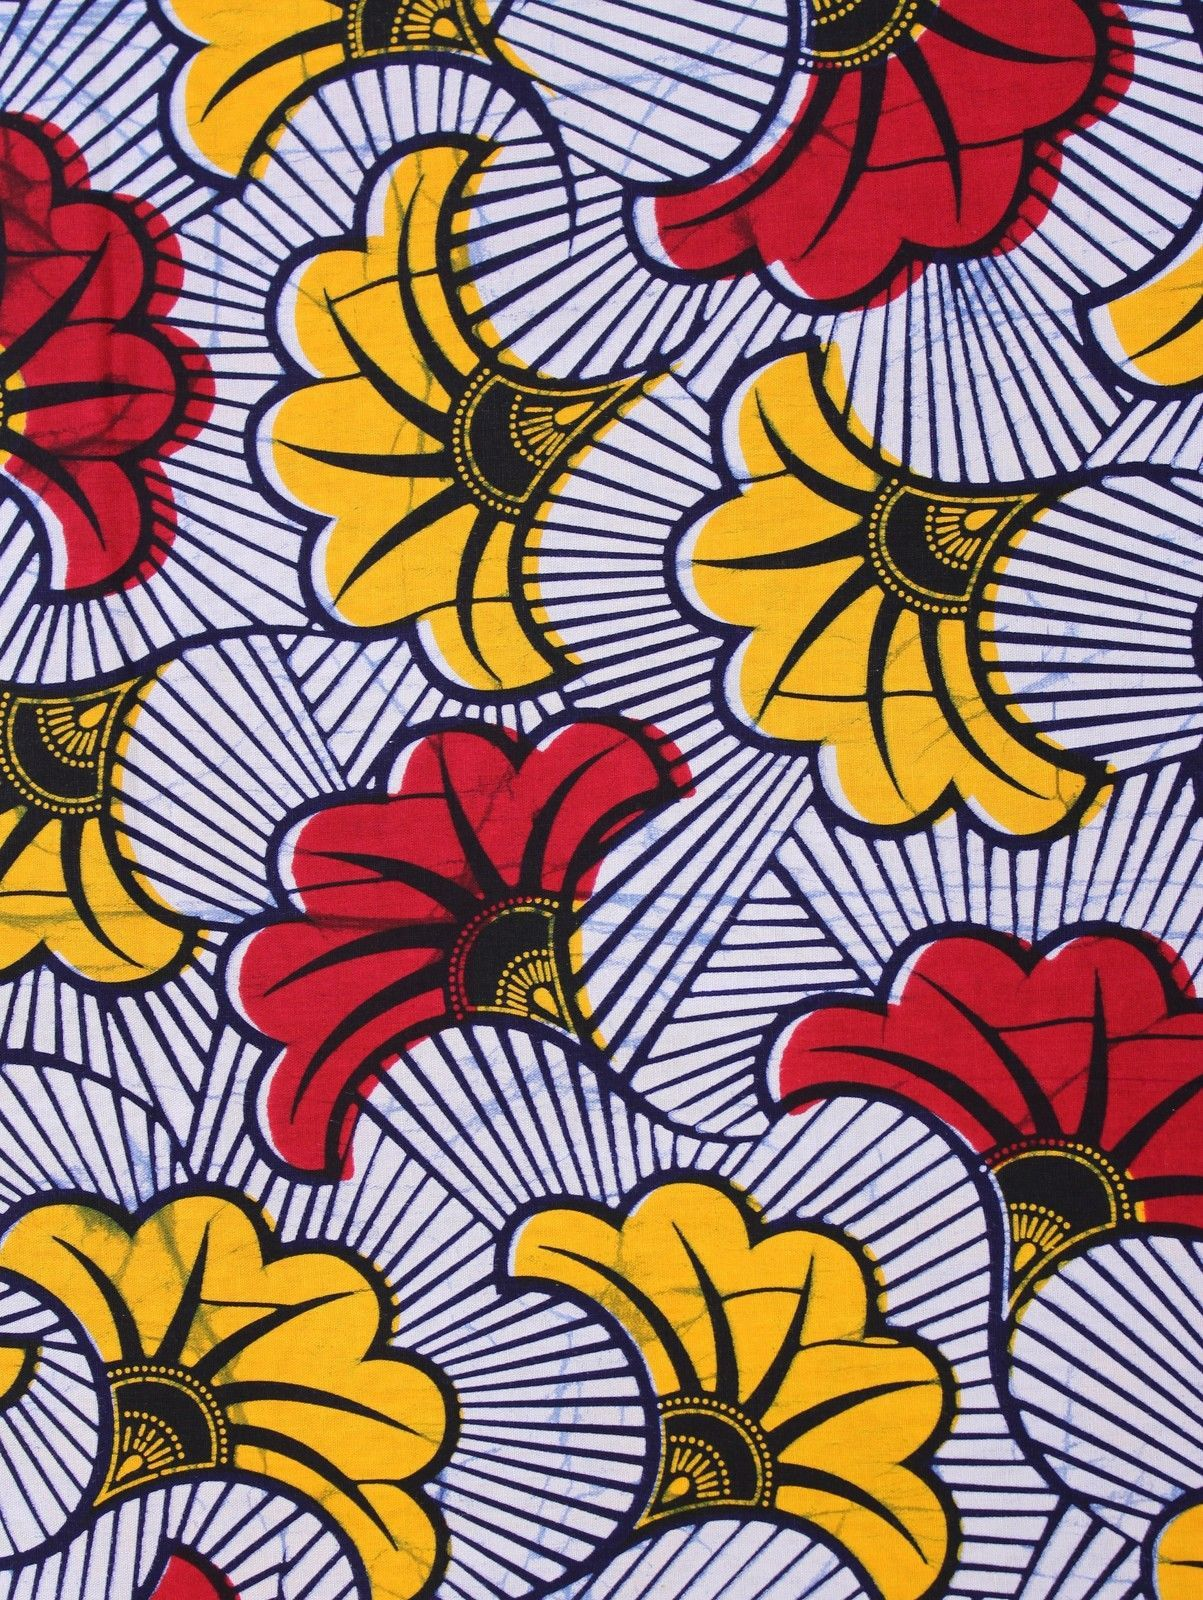 African Wax Print Cotton Fabric 4 Crafts /& Dresses Bright /& Bold Colors Per Yard